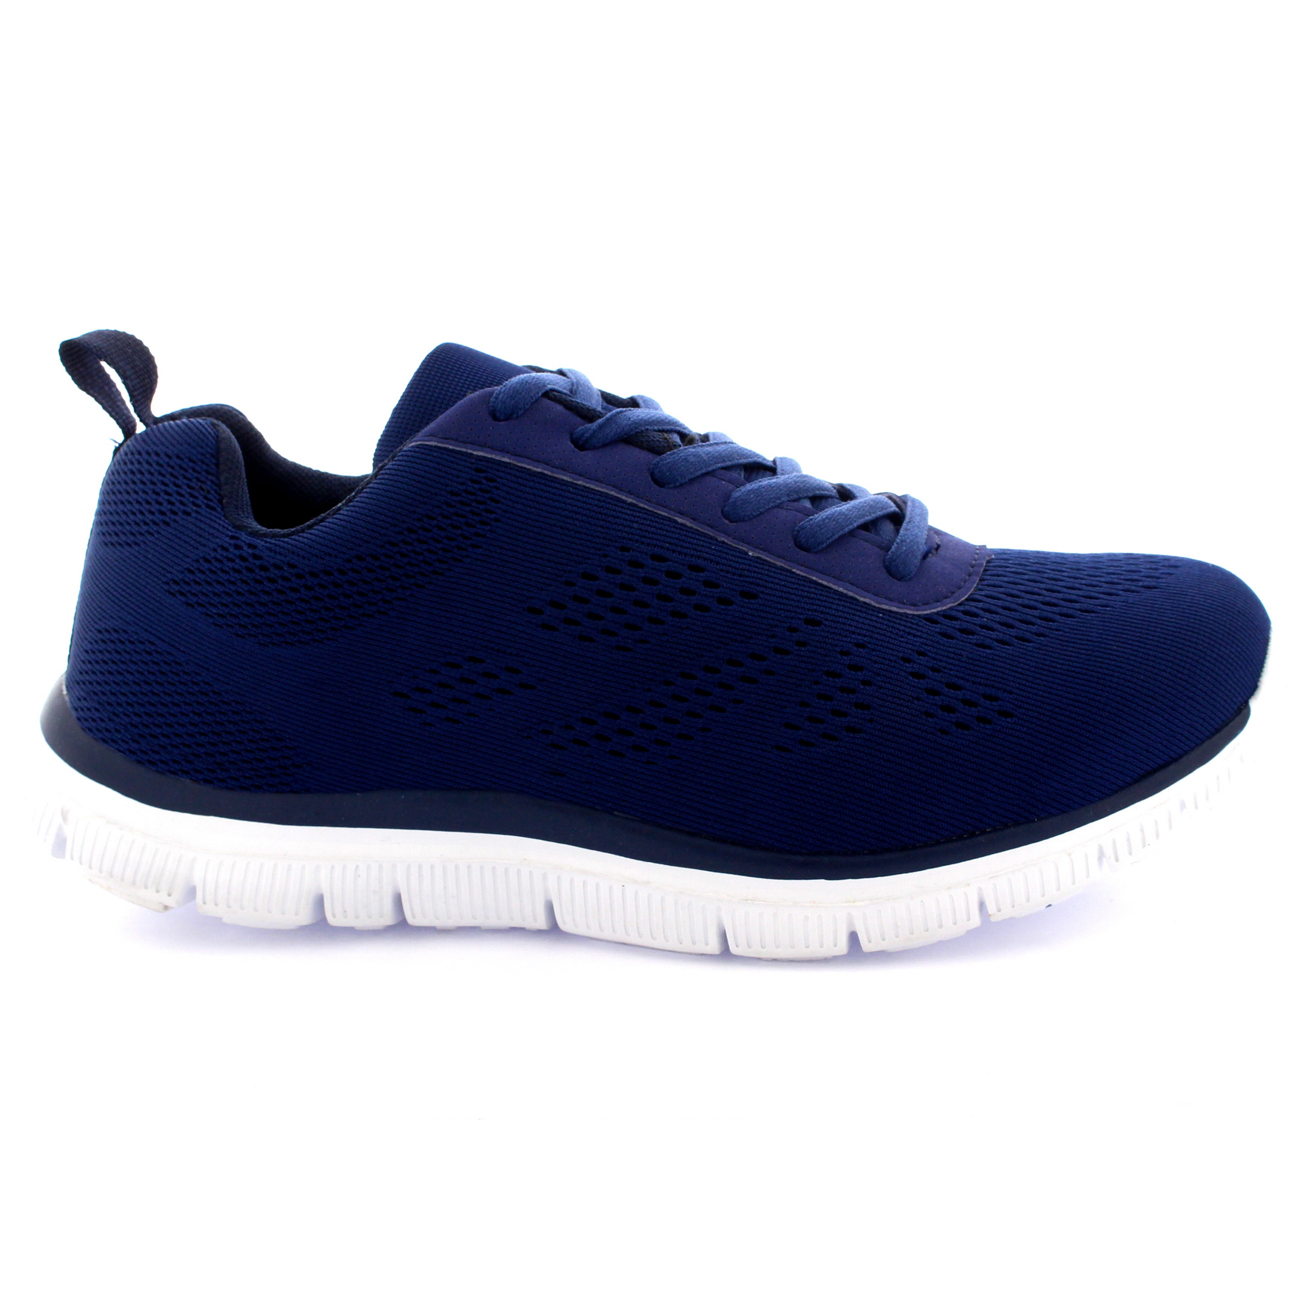 womens get fit mesh running shoes trainers athletic